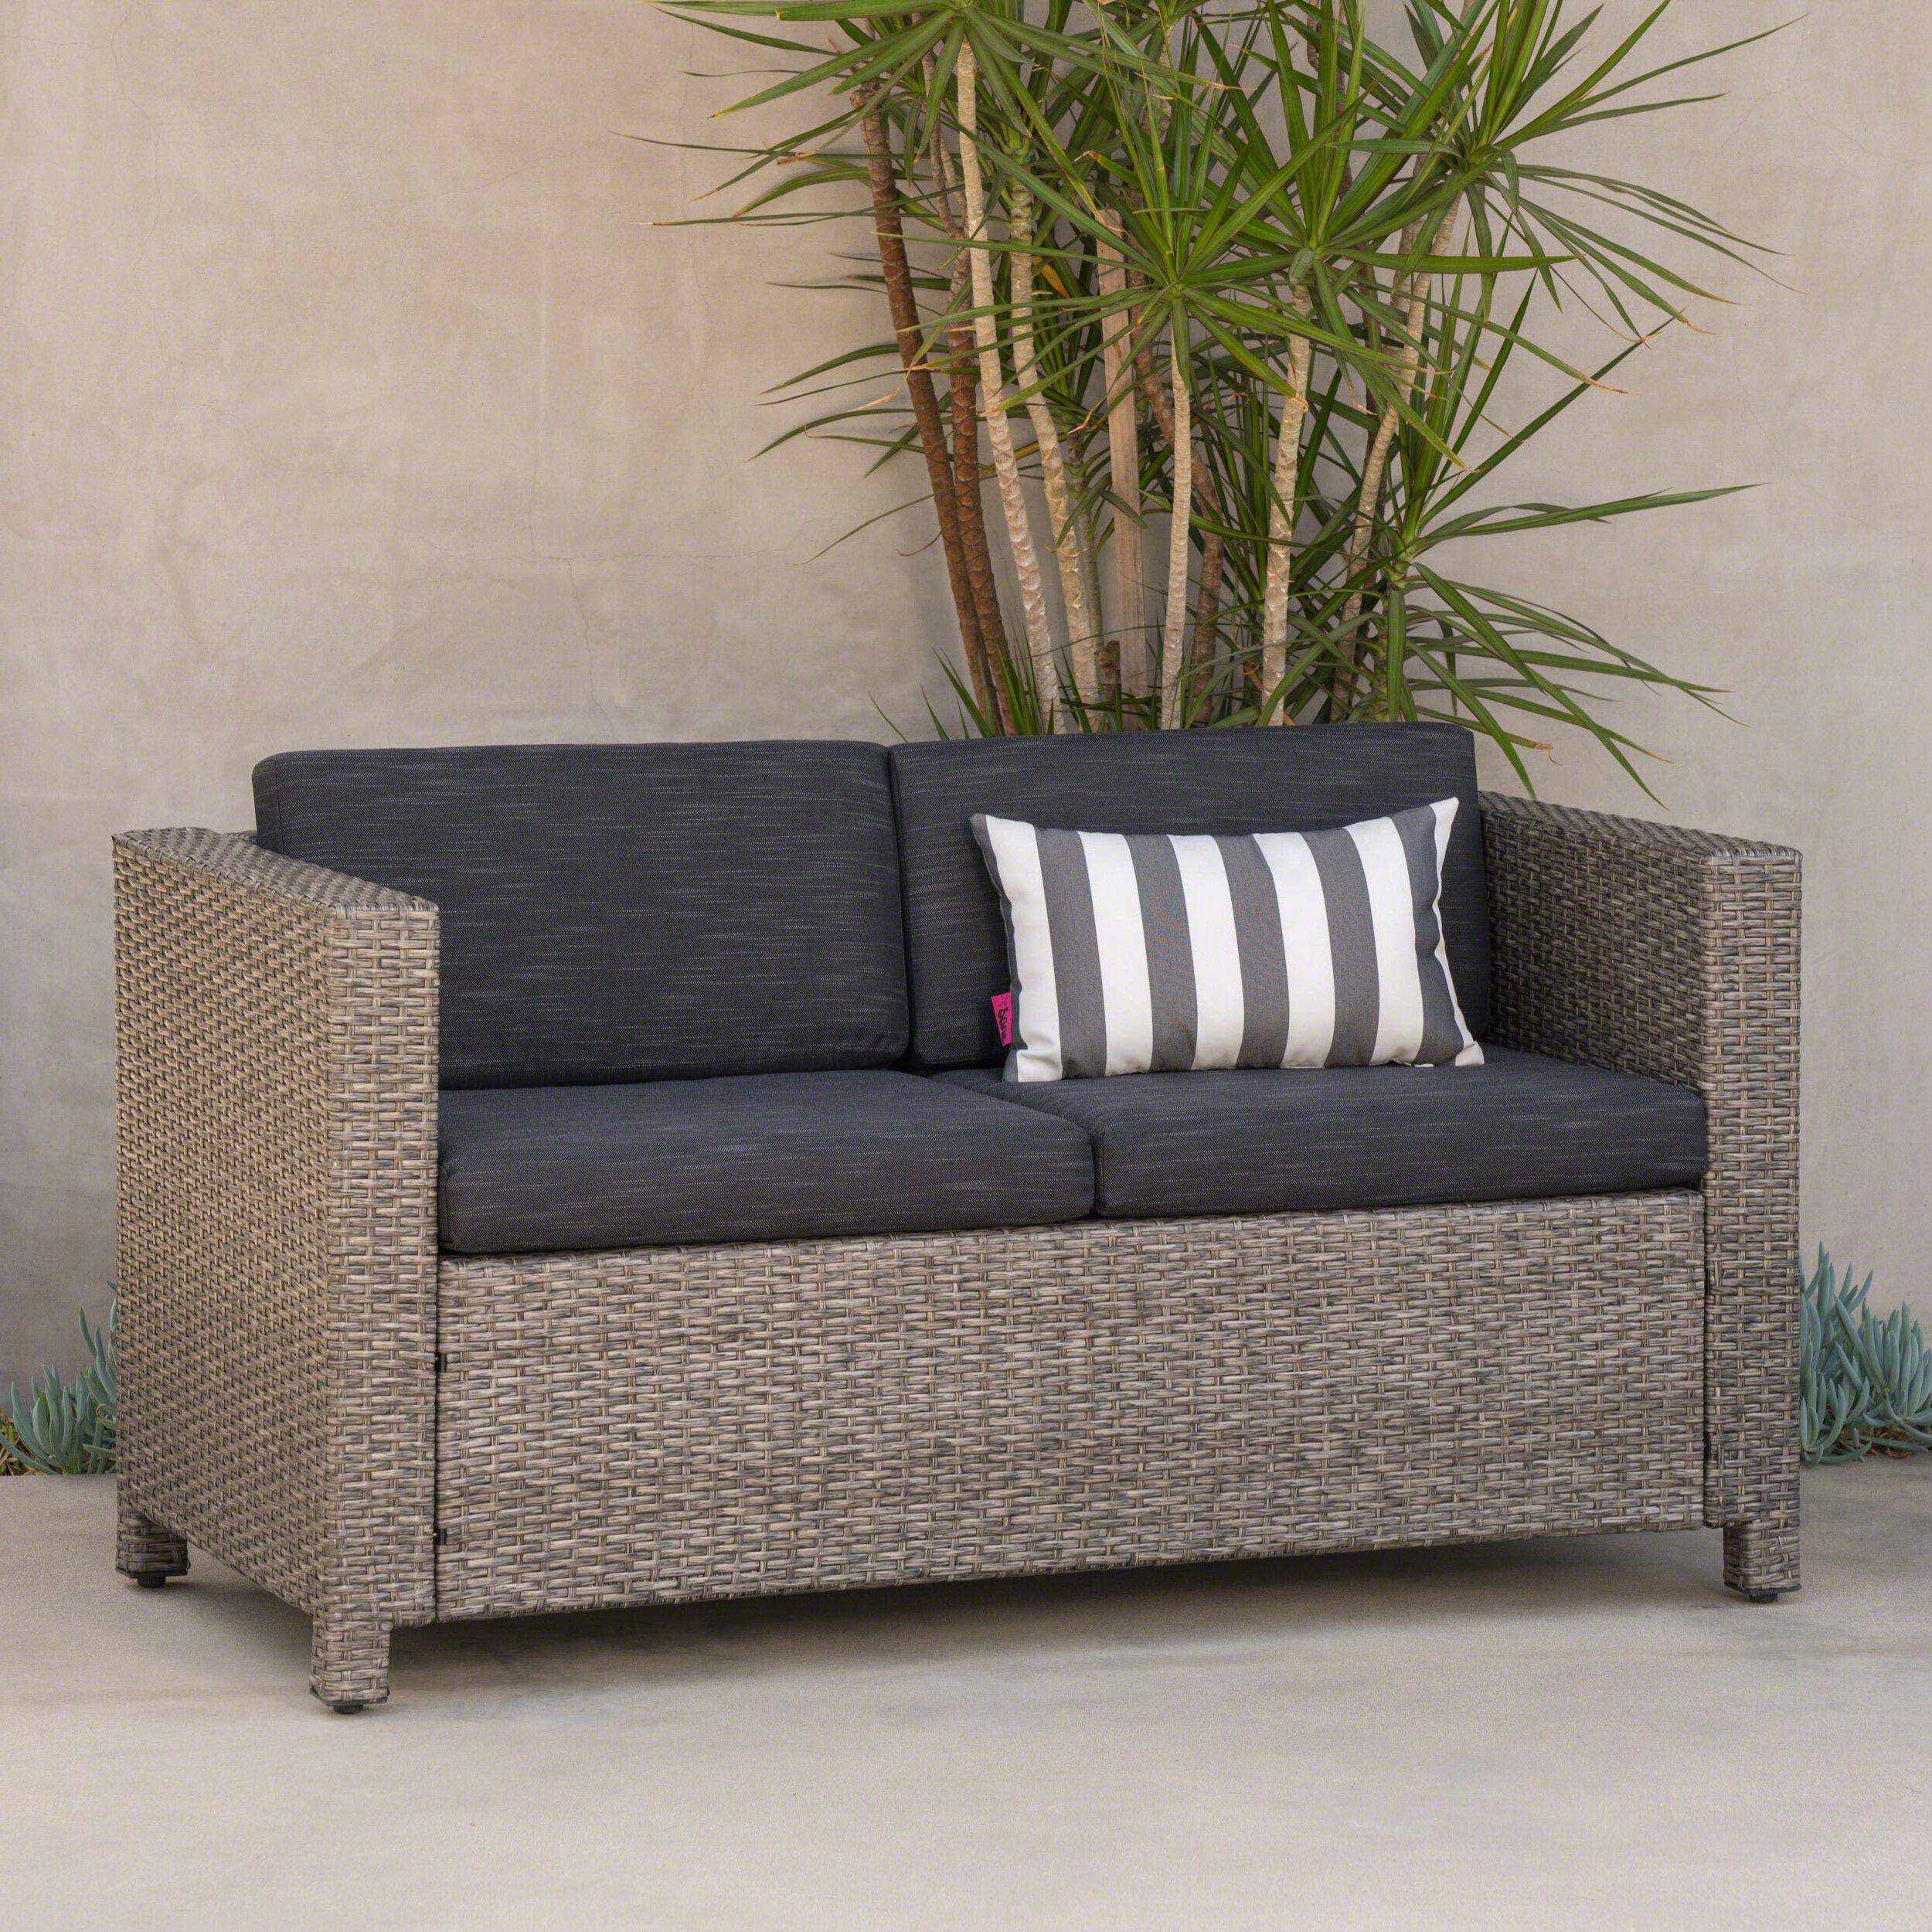 Famous Furst Outdoor Loveseat With Cushions In Furst Outdoor Loveseats With Cushions (View 3 of 25)